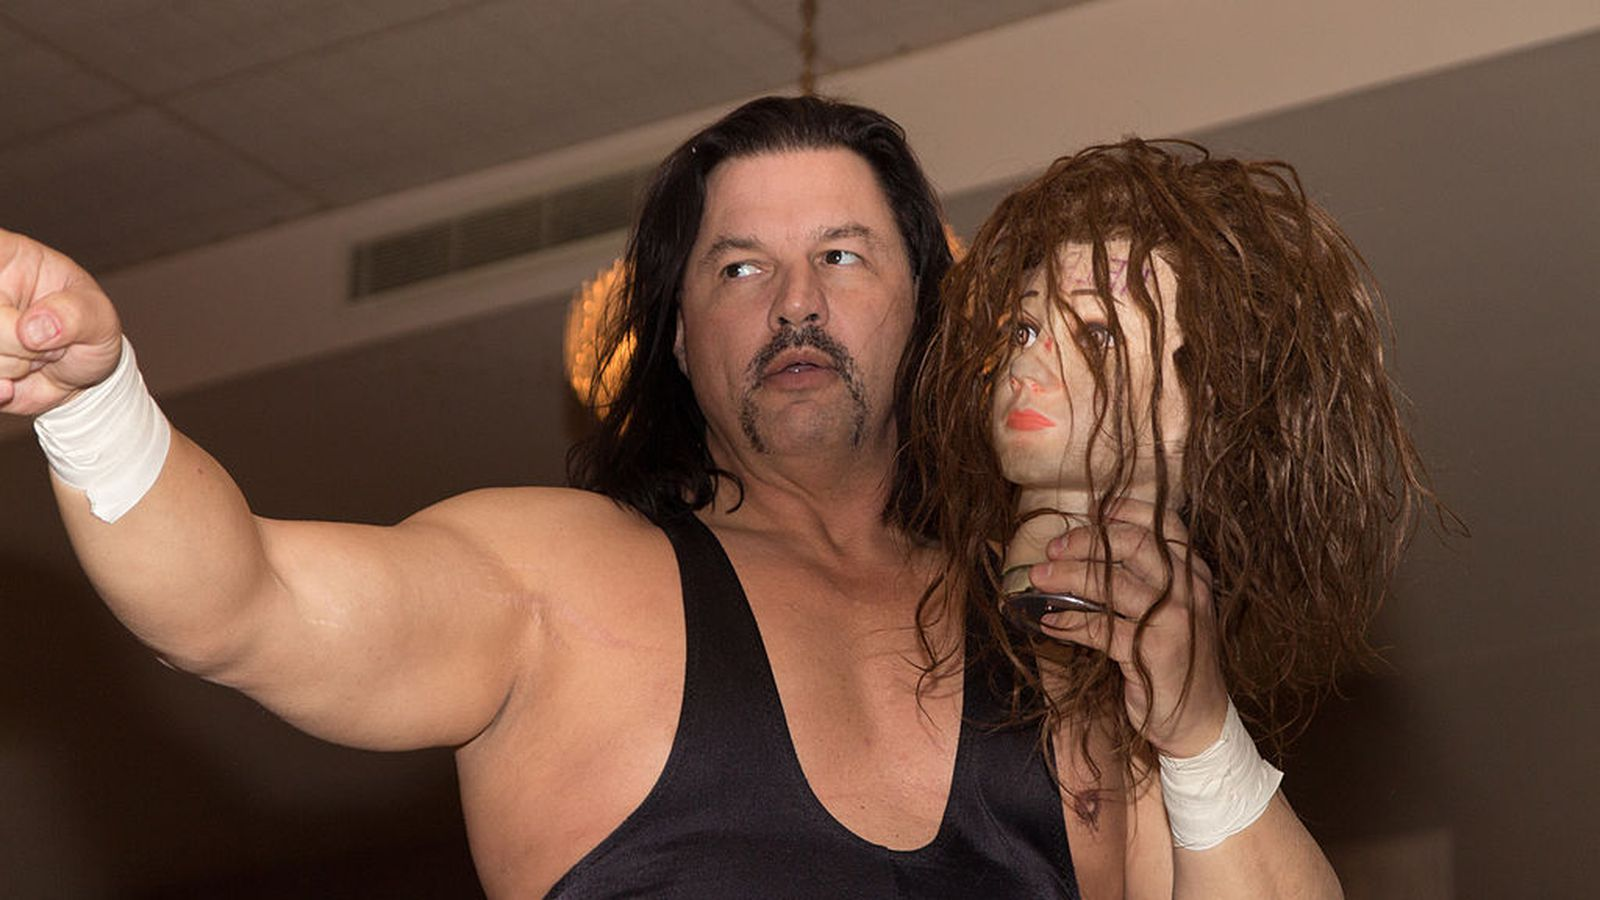 al snow  some are more concerned with fame than being a